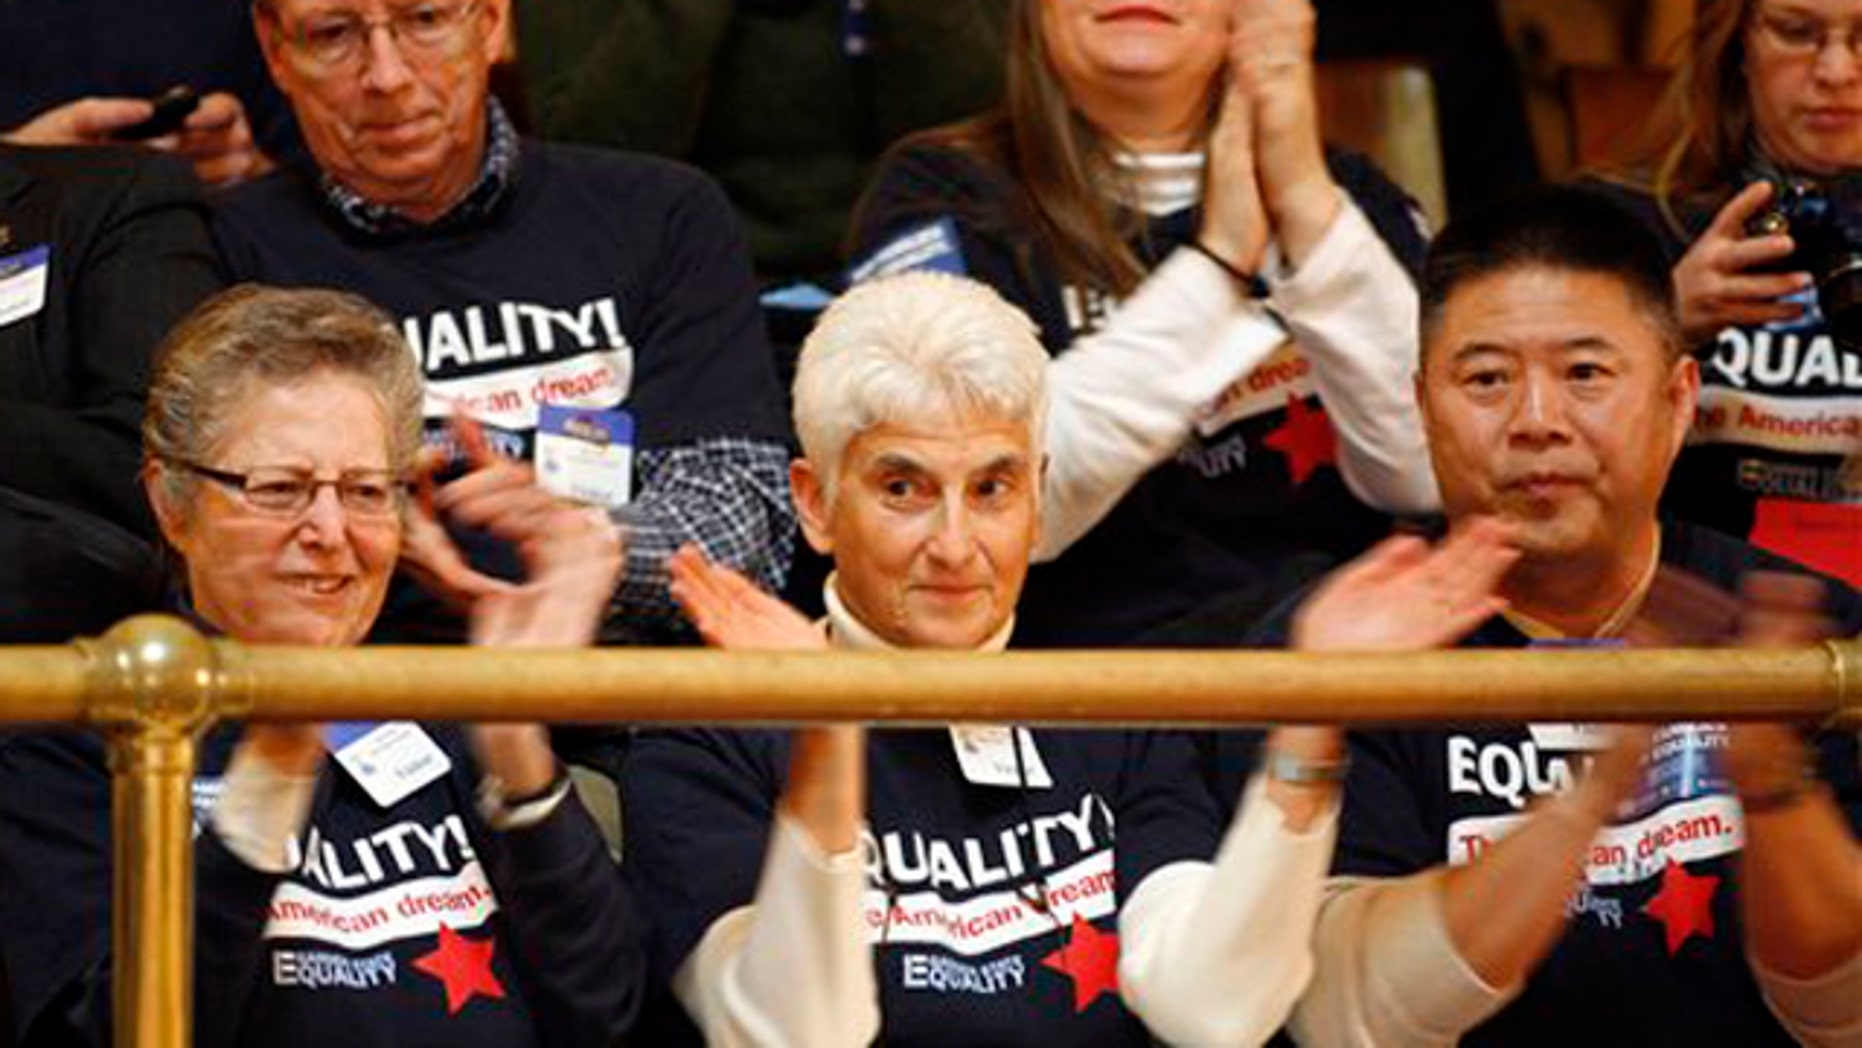 Feb. 13, 2012: Spectators in the balcony applaud the passage of the bill in the New Jersey State Senate recognizing same-sex marriages by a vote of 24-16, in Trenton, N.J.